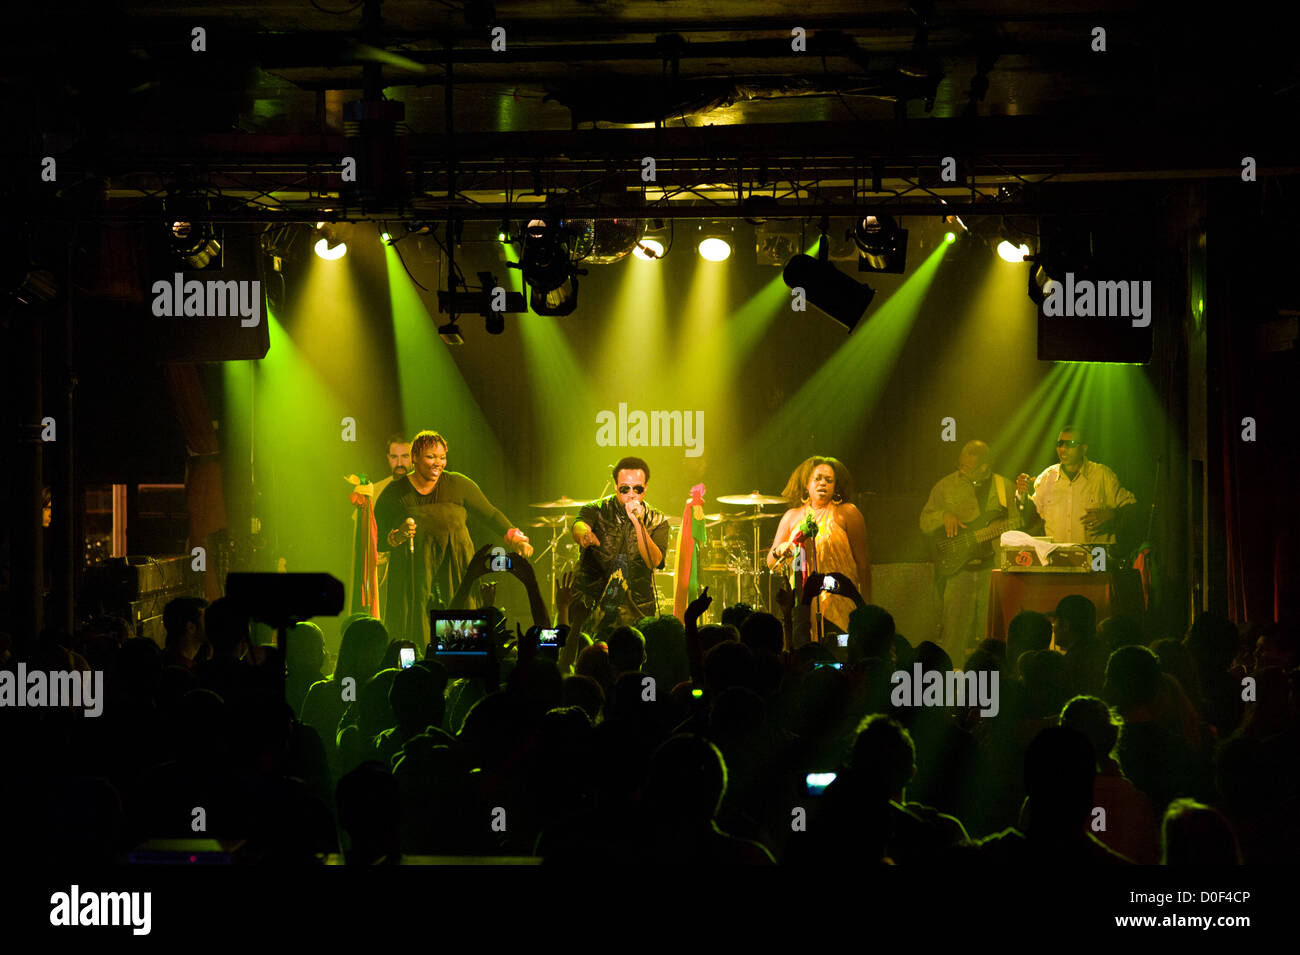 Arrested Development performing at Double Door in Chicago, Illinois. MAX HERMAN/ALAMY - Stock Image